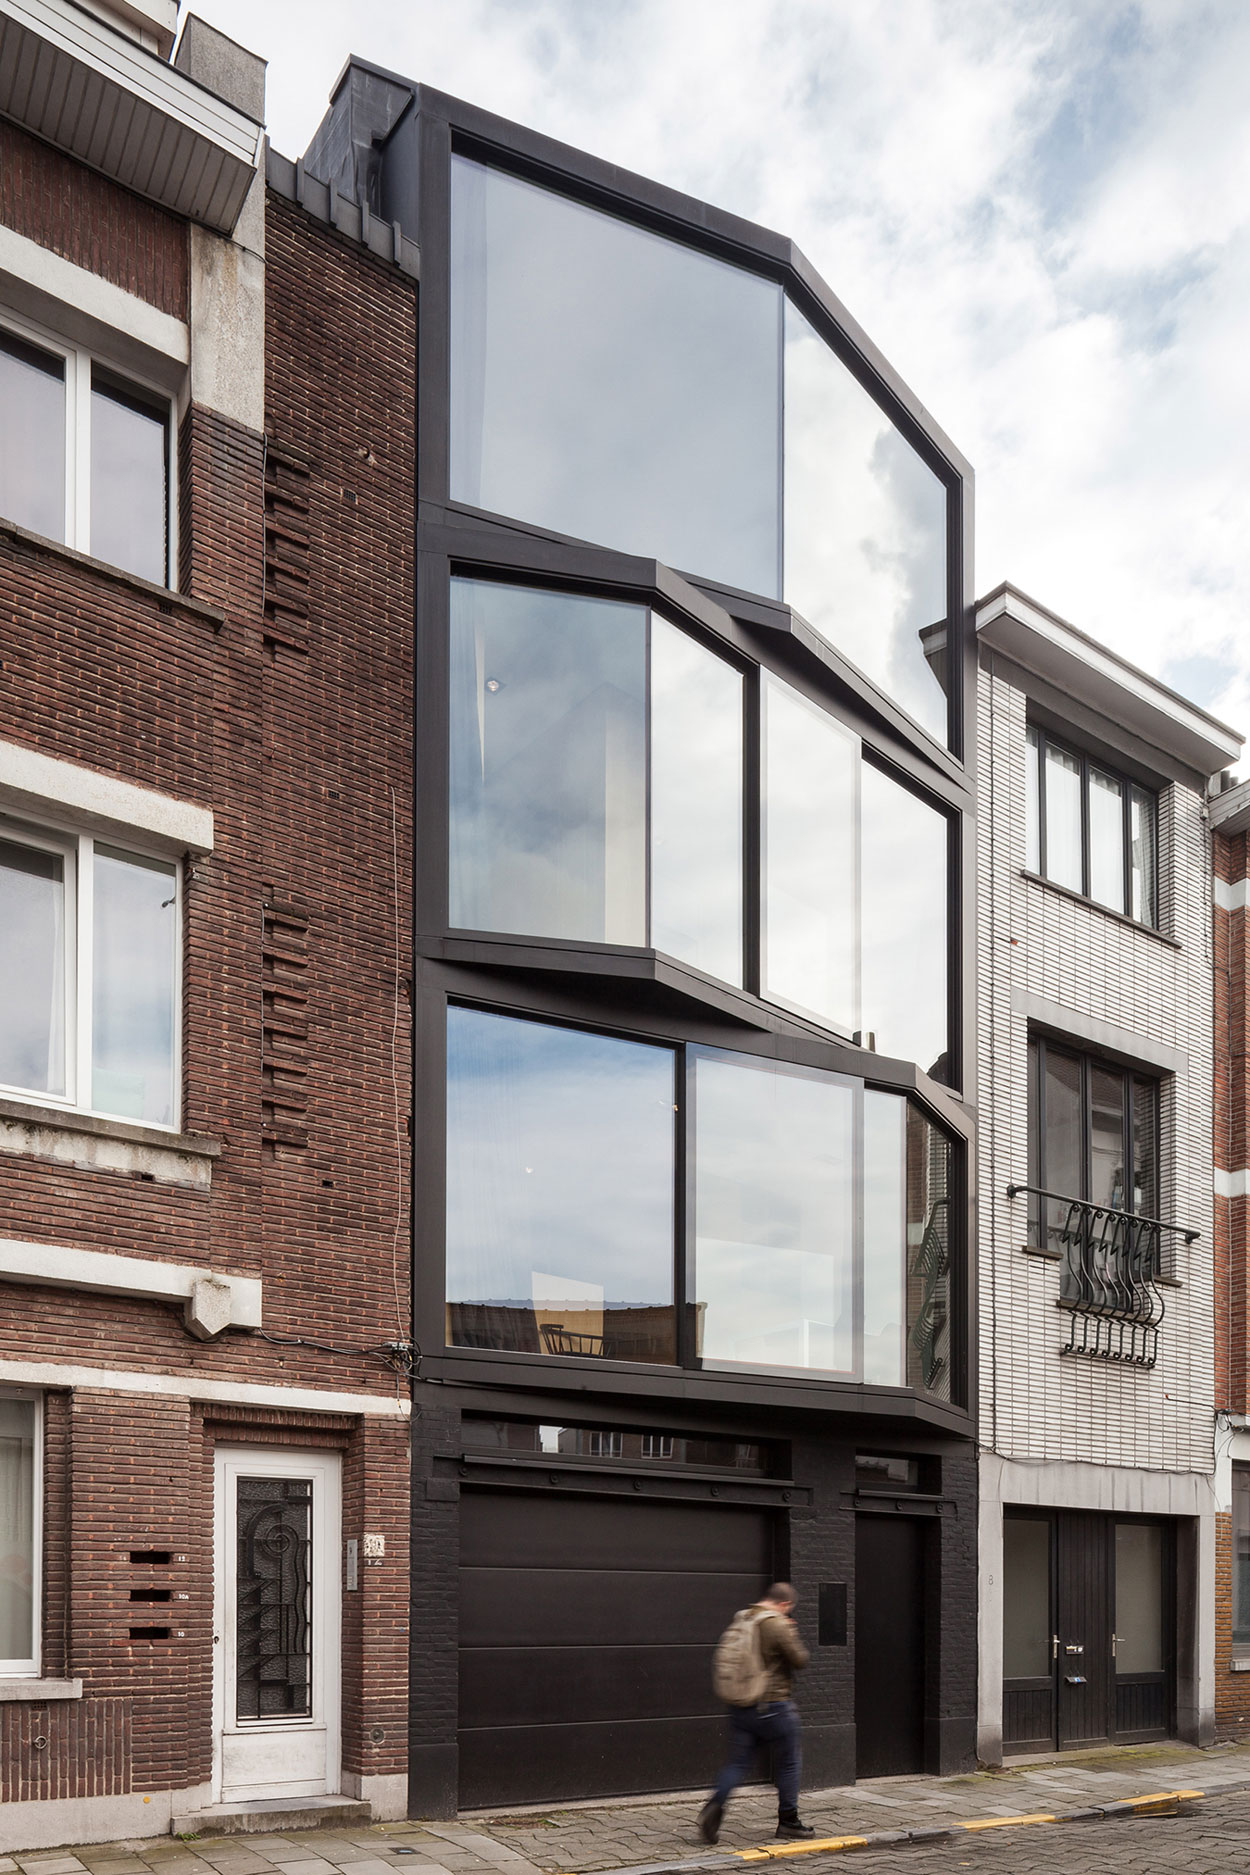 Steven Vandenborre and Mias Sys Come Together to Create a Simple and Elegant Home in Ghent, Belgium